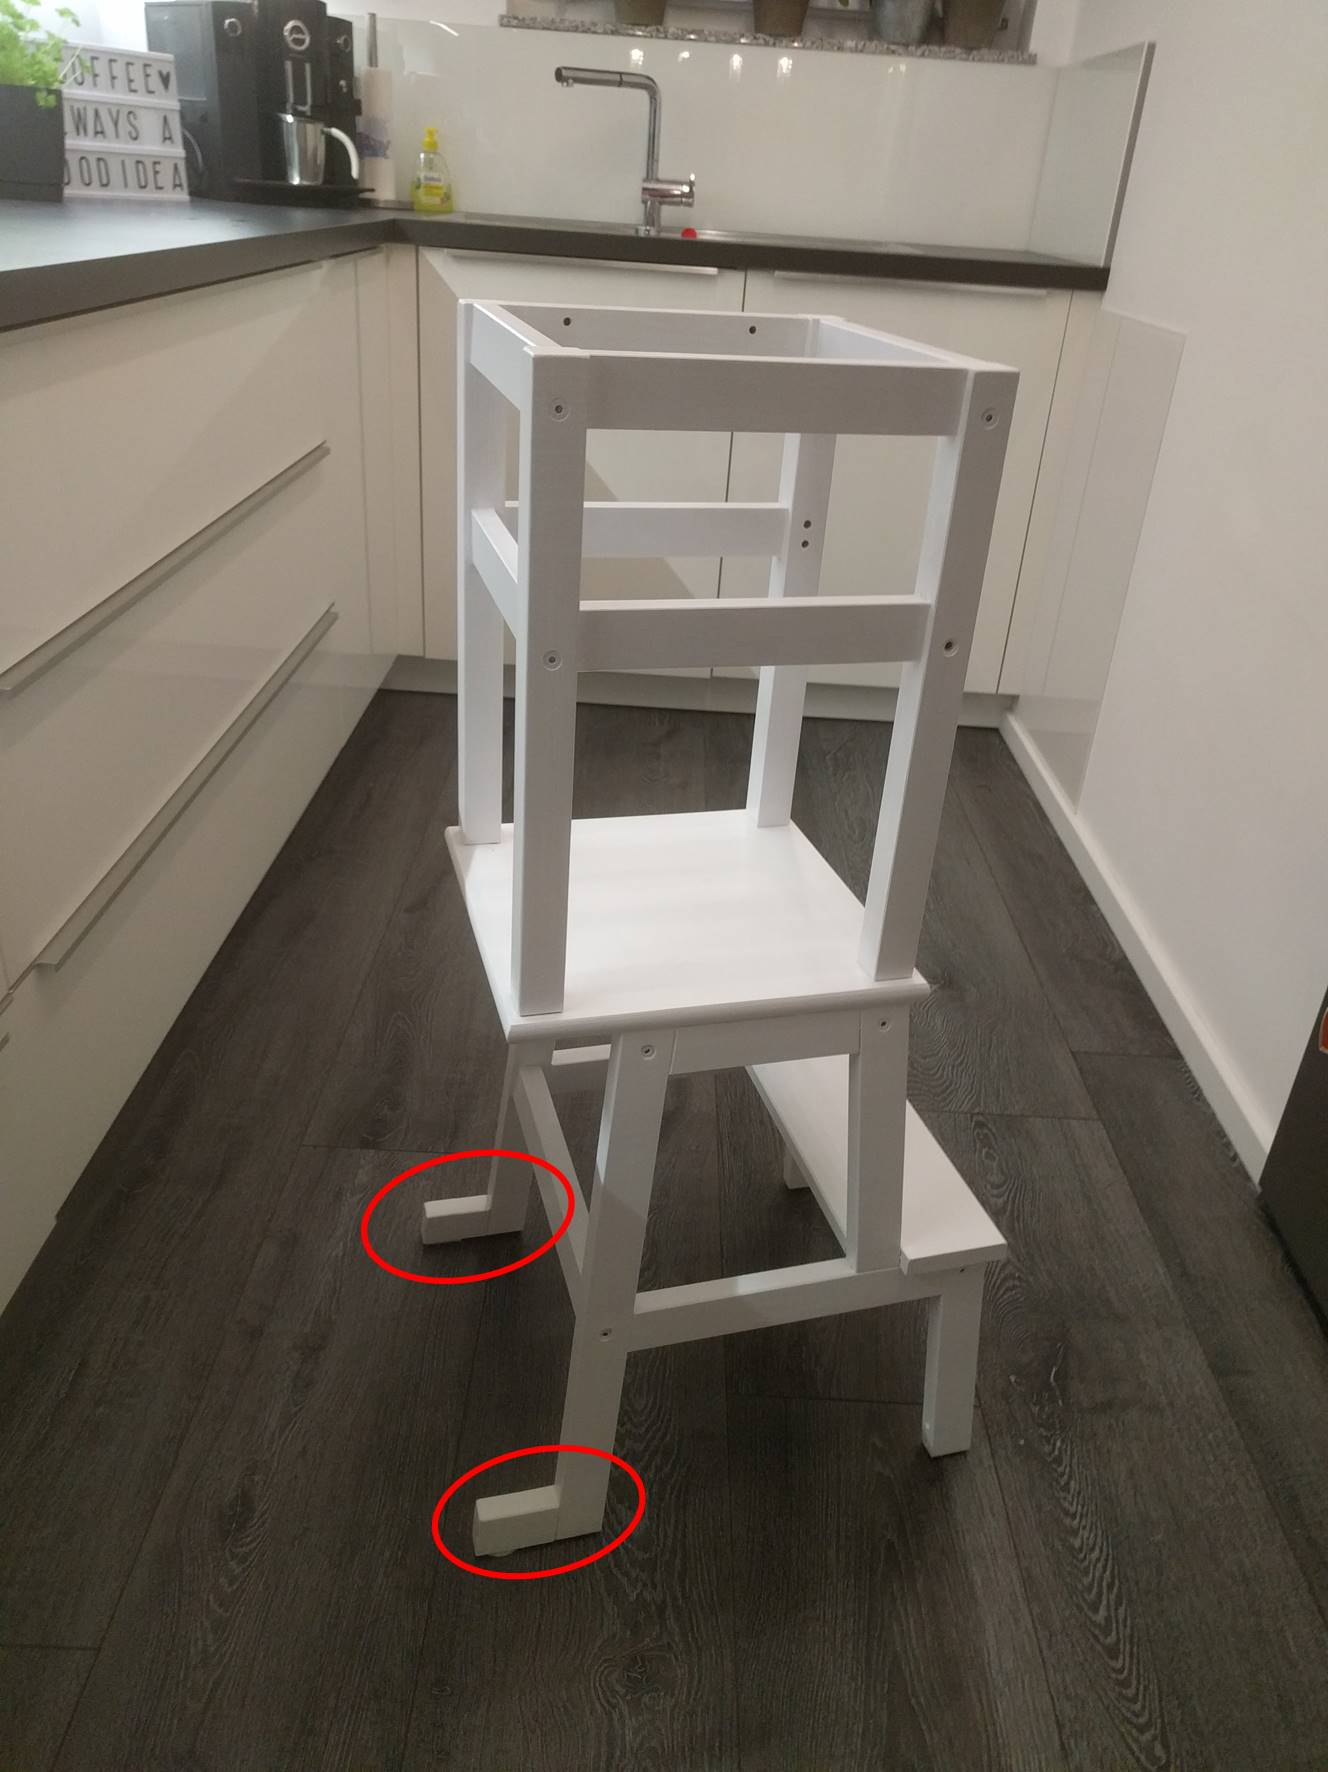 Ikea Ivar Anleitung Learning Tower – Ikea Hack – Gabelschereblog